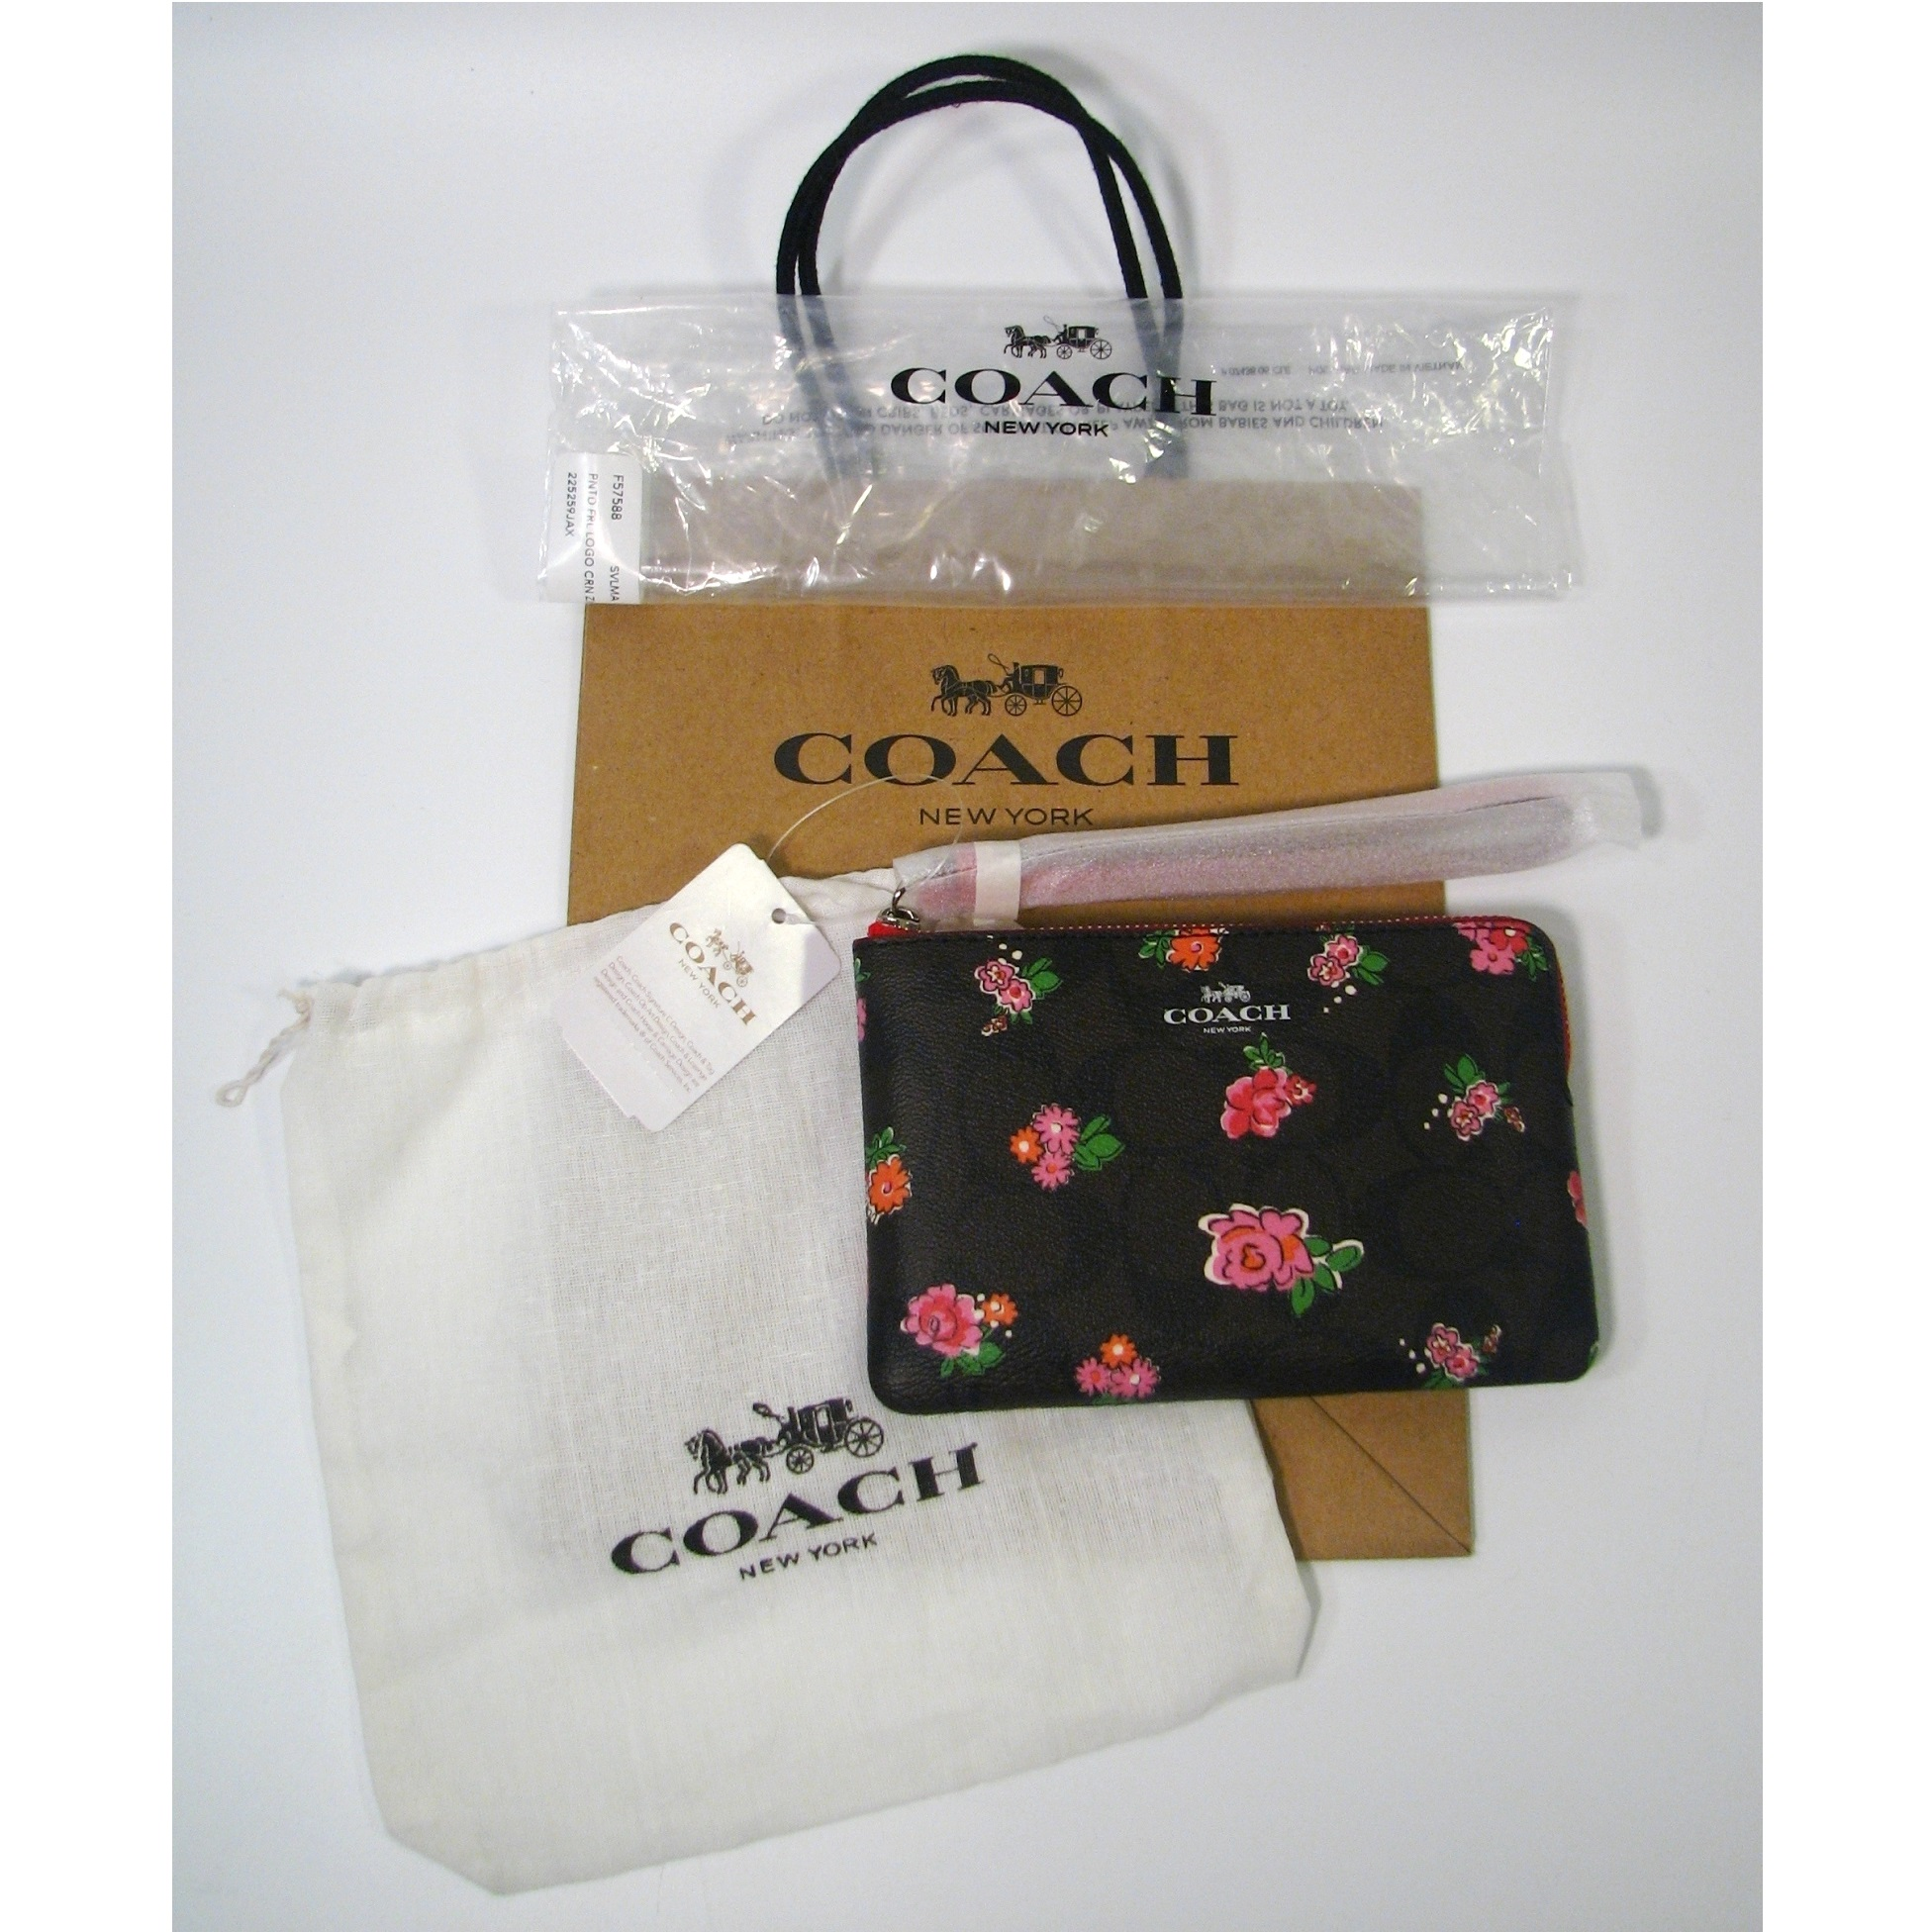 Coach Wristlet Brown With Pink Flowers Nwt Dust And Gift Bag